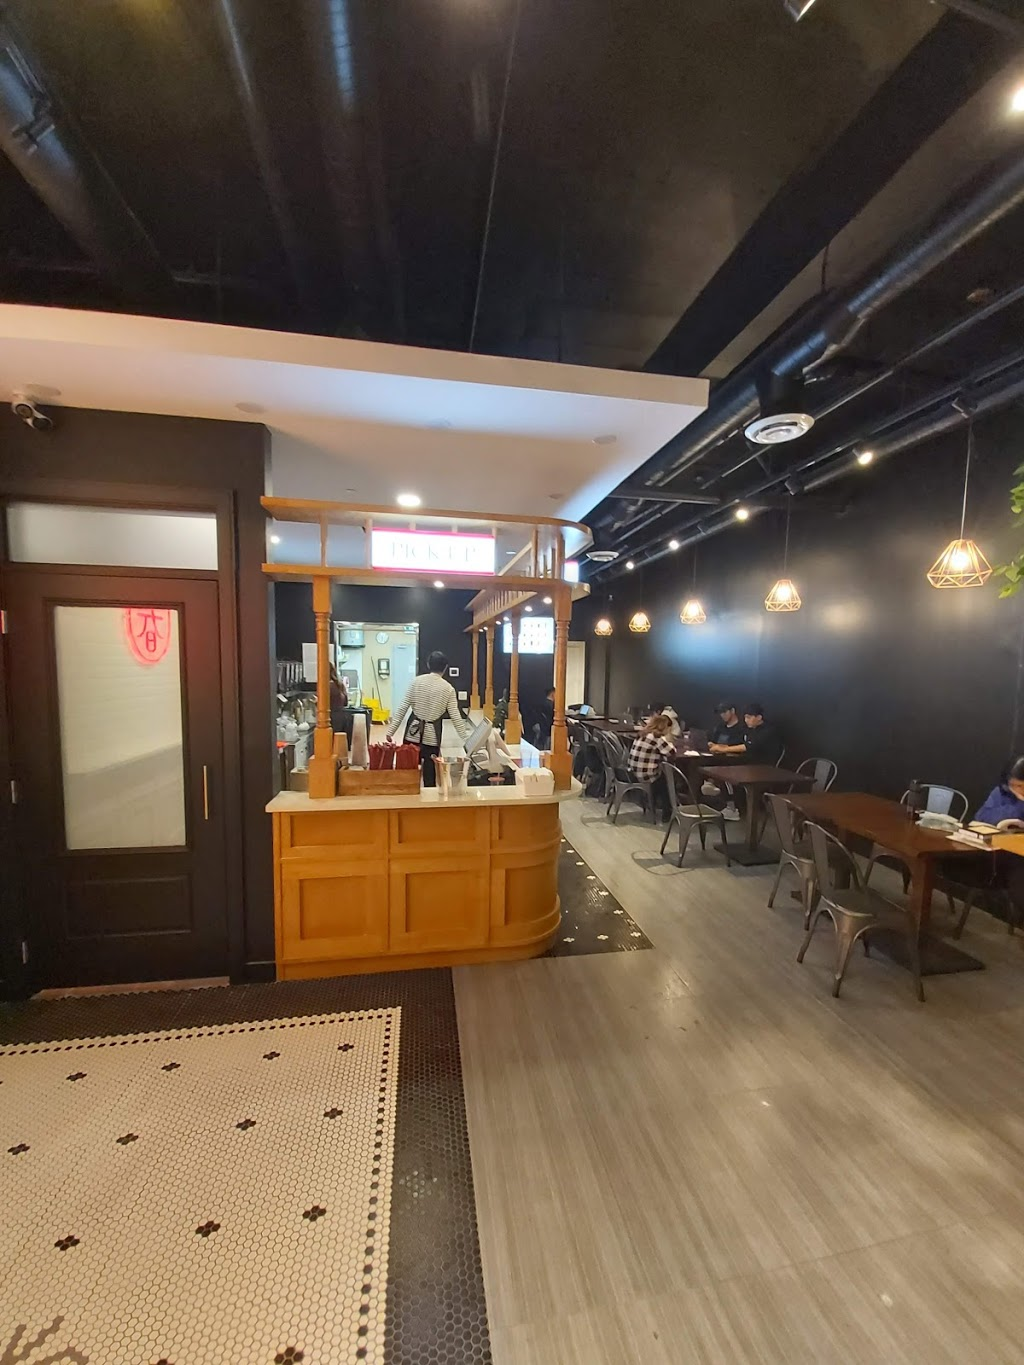 CHUNYANG TEA (West Blvd) | cafe | 5335 West Blvd, Vancouver, BC V6M 3W4, Canada | 6044233668 OR +1 604-423-3668